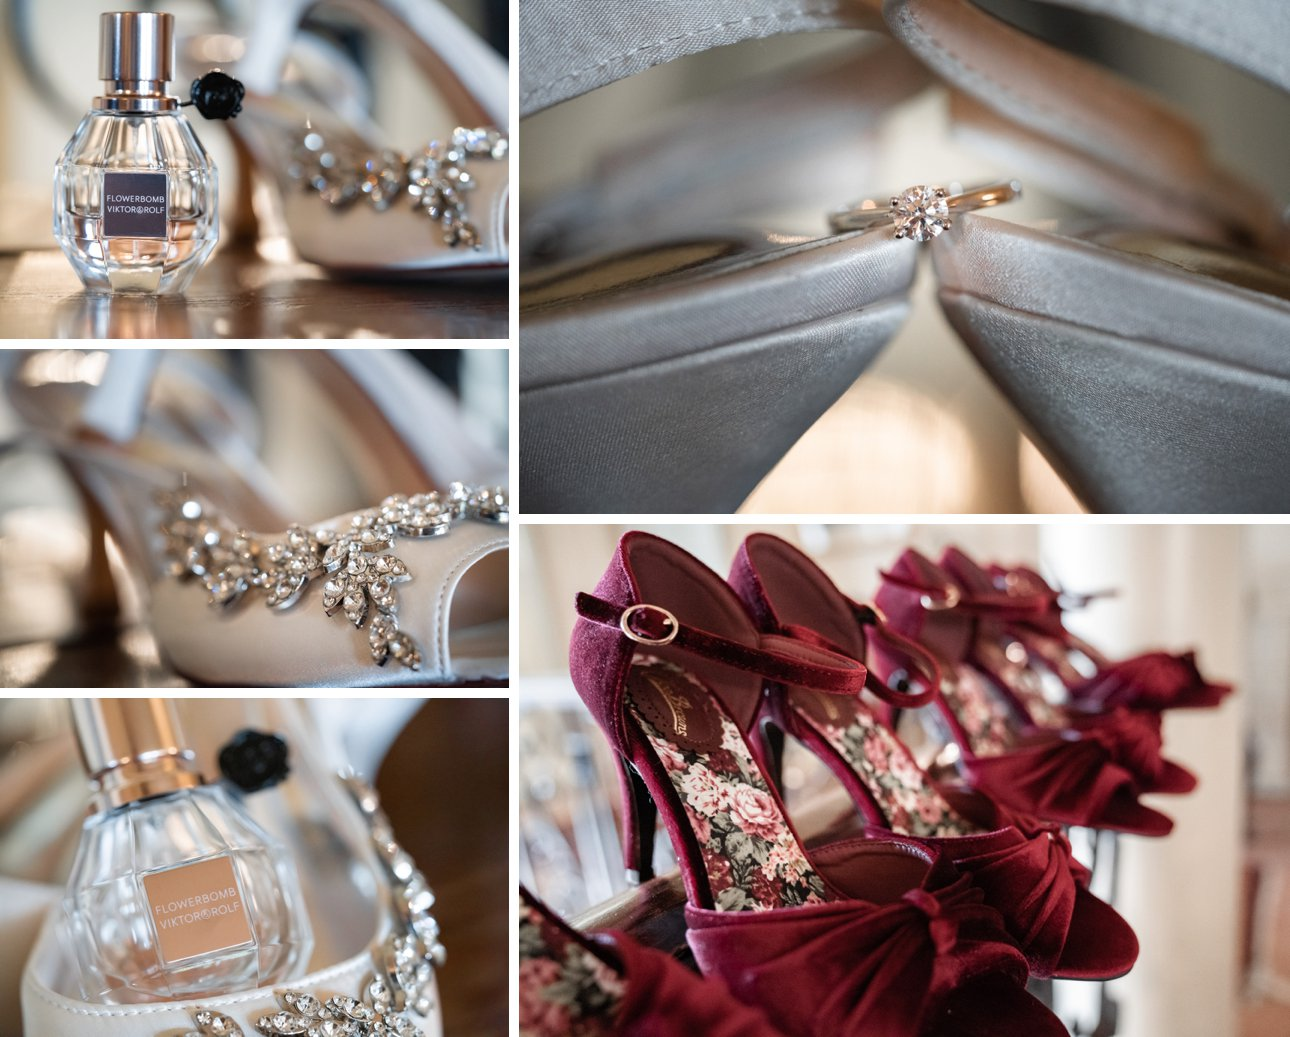 The Lawn Rochford wedding details including shoes, perfume and the engagement ring.